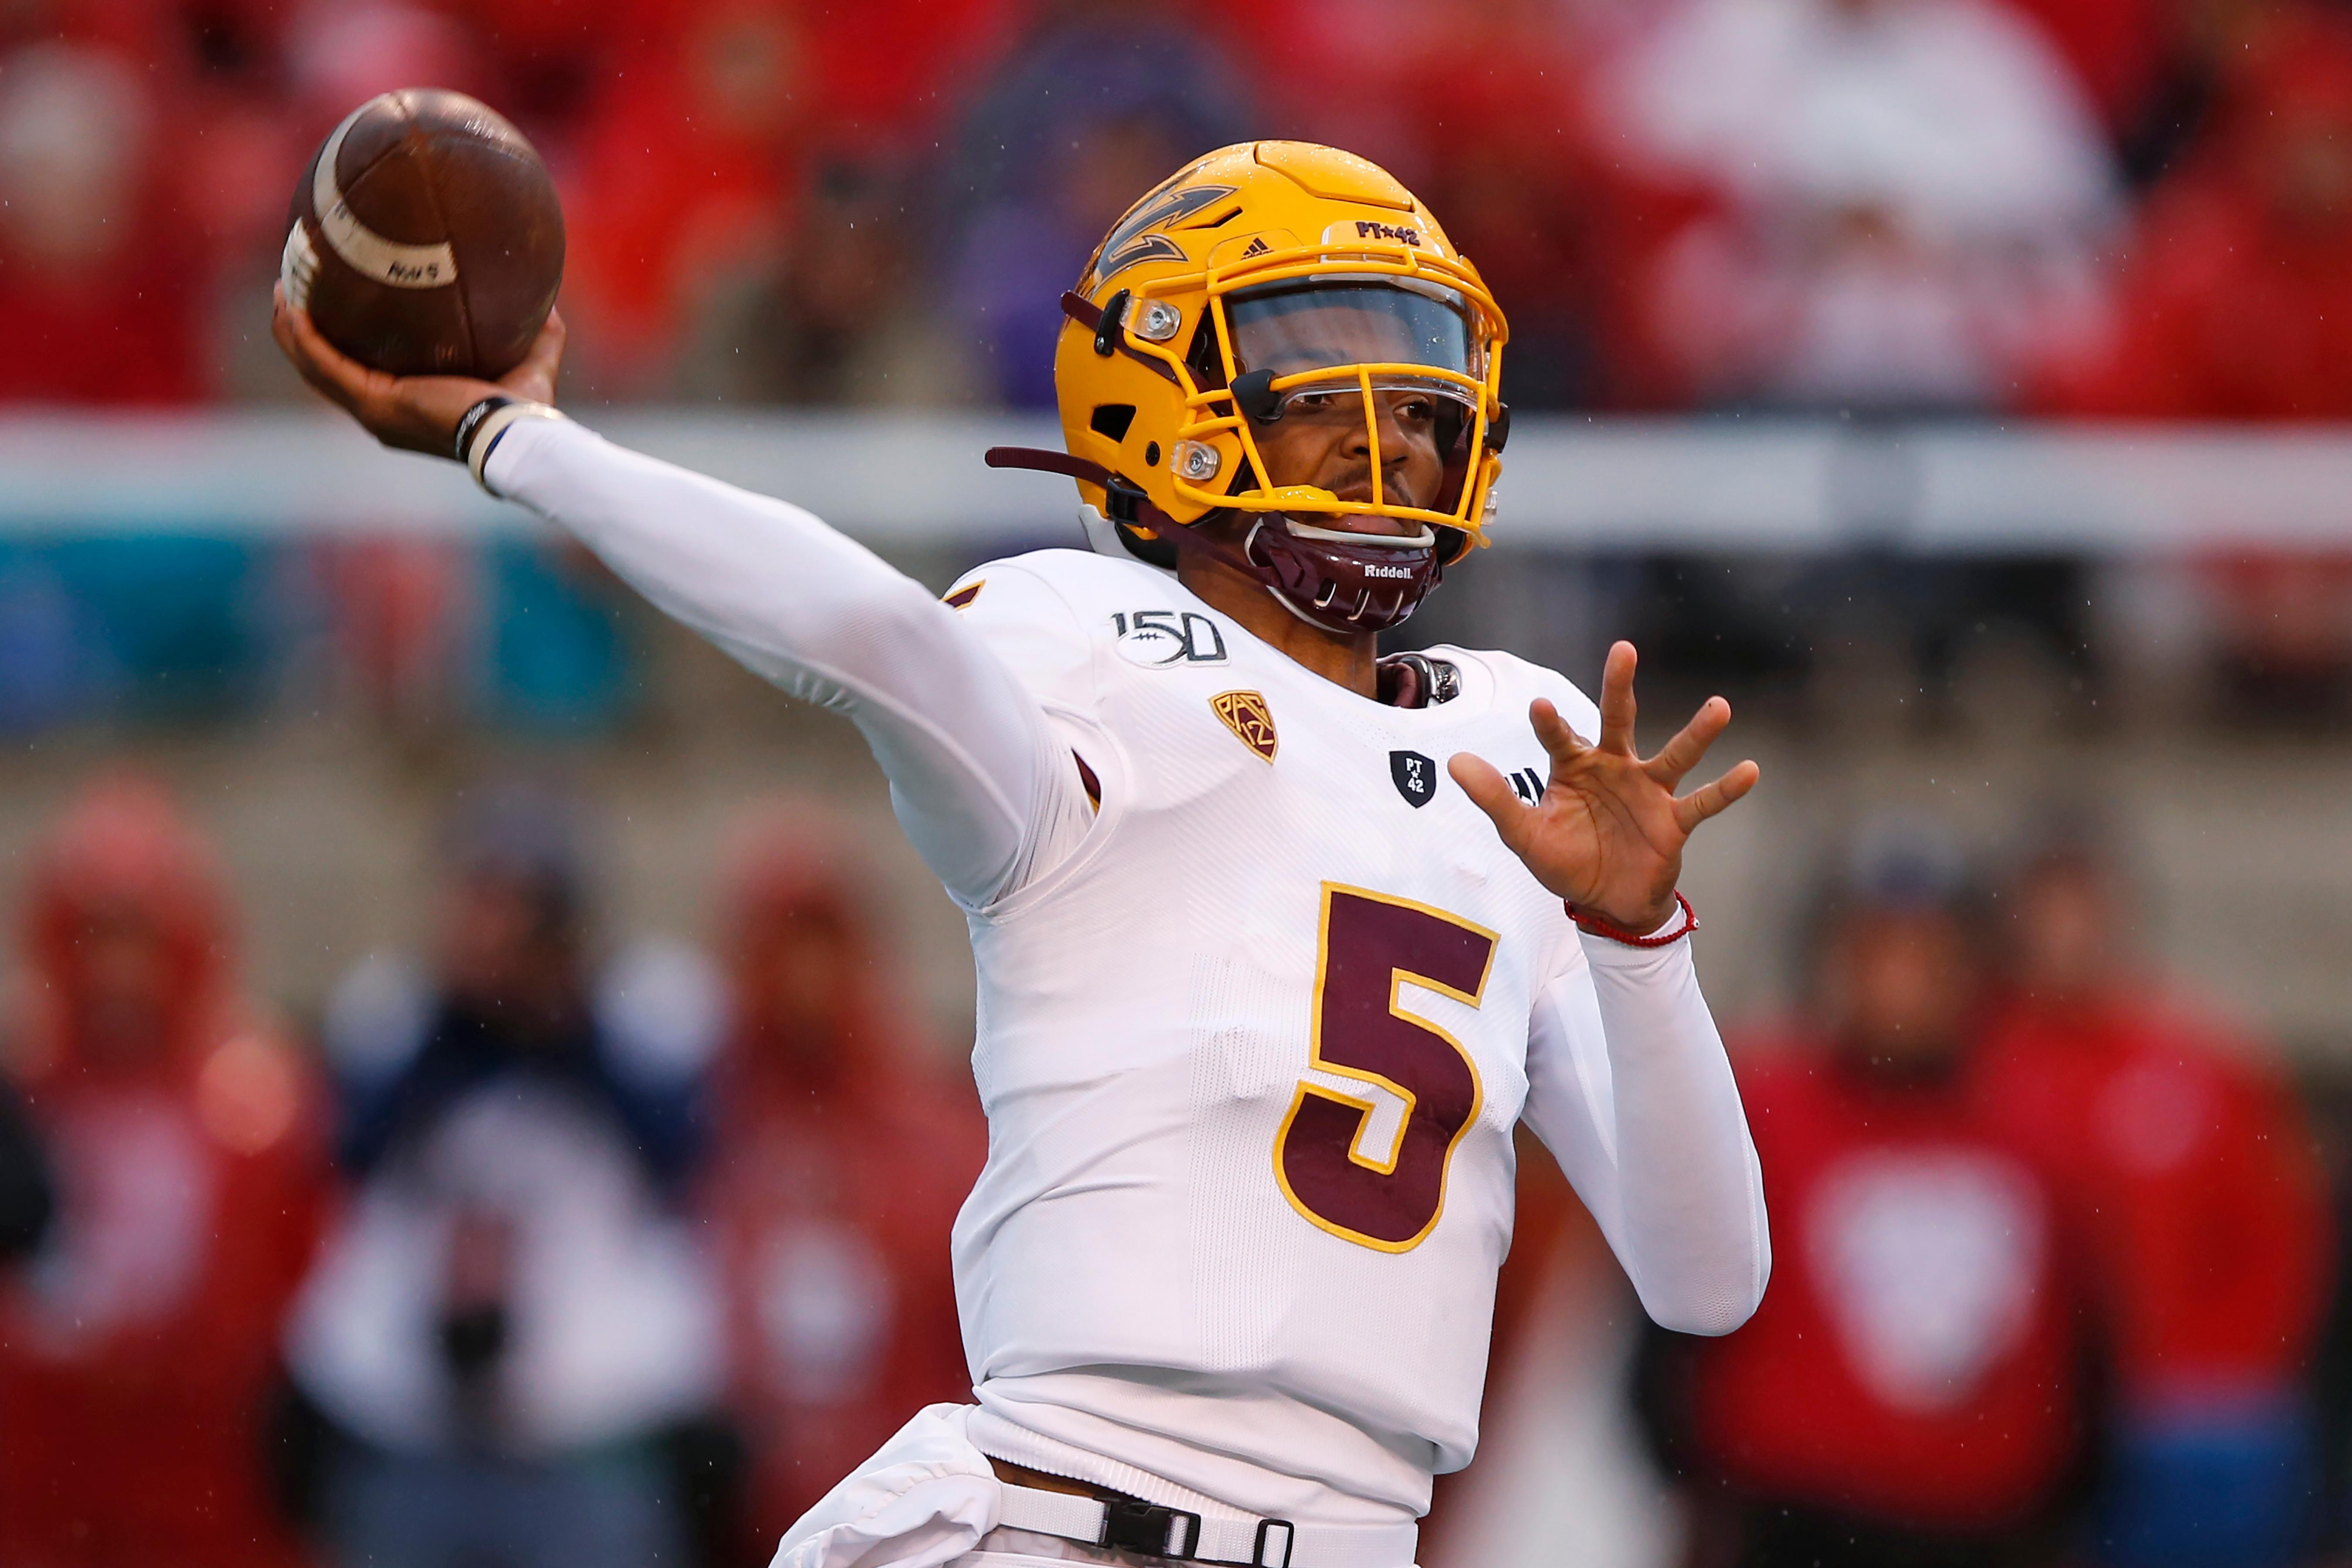 Arizona State quarterback Jayden Daniels throws a pass during the first half of an NCAA college football game against Utah on Saturday, Oct. 19, 2019, in Salt Lake City. (AP Photo/Rick Bowmer)